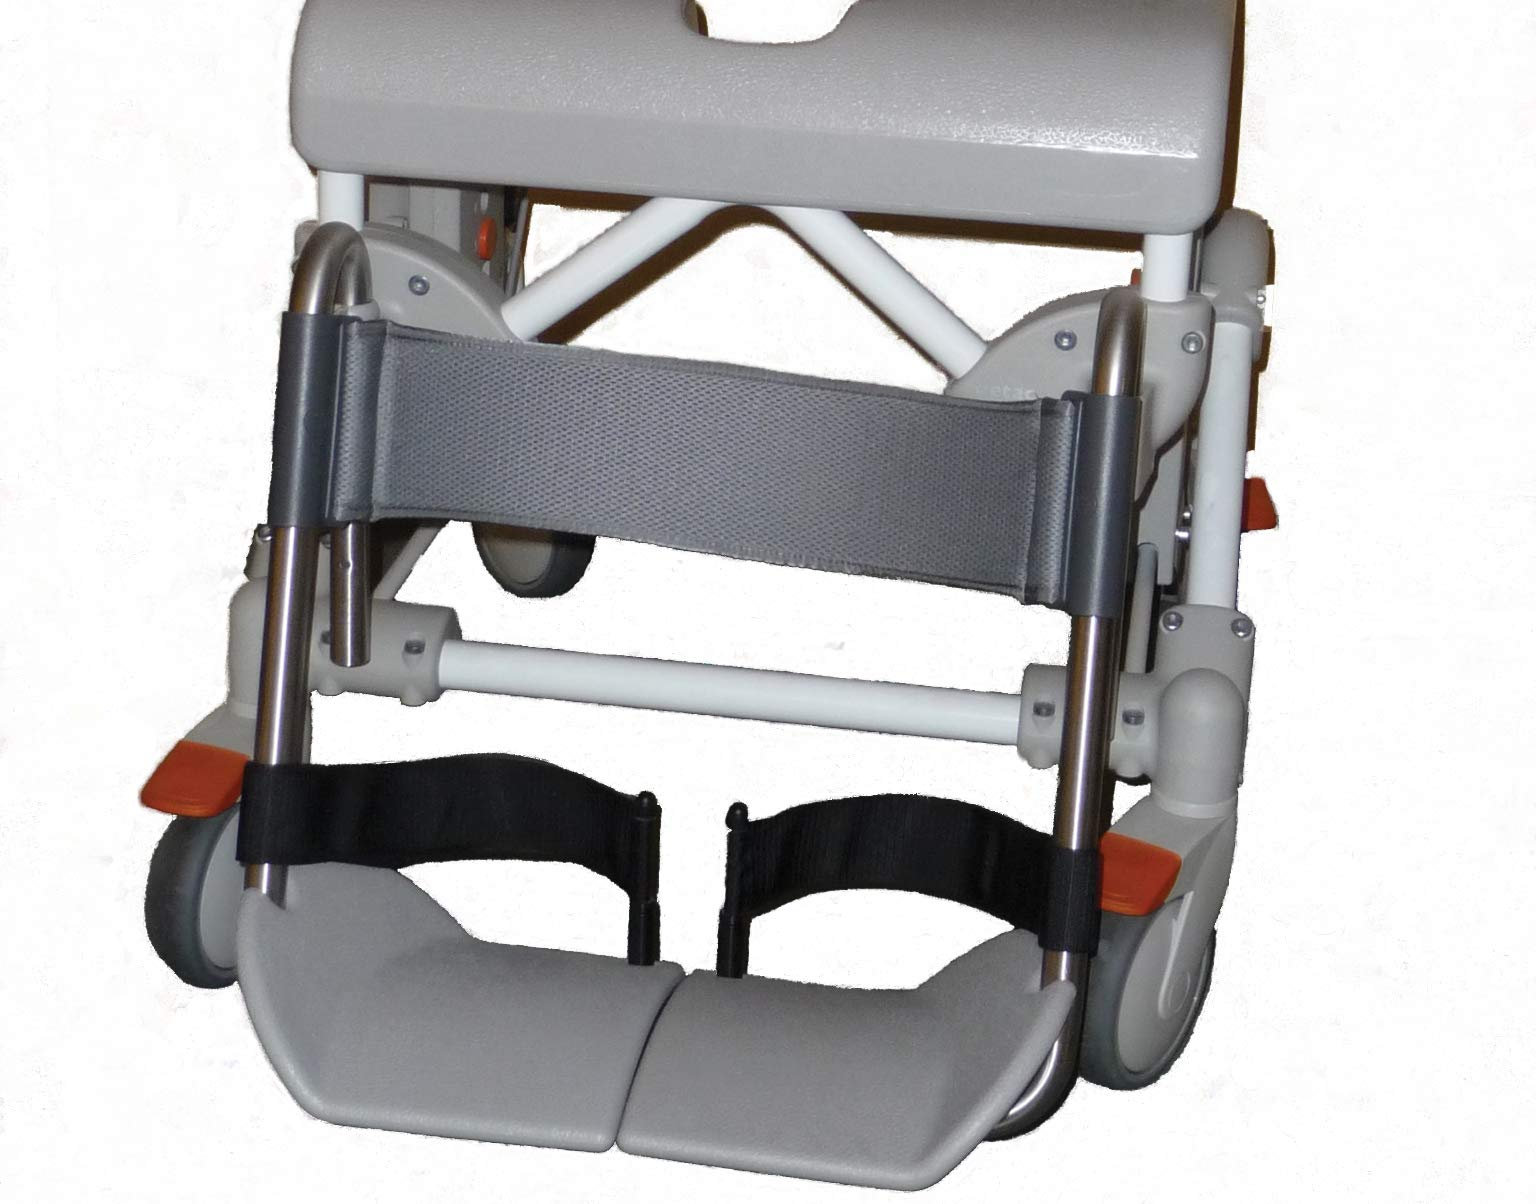 Bodypoint Shower Chair Calf Support, Gray, 20 inch